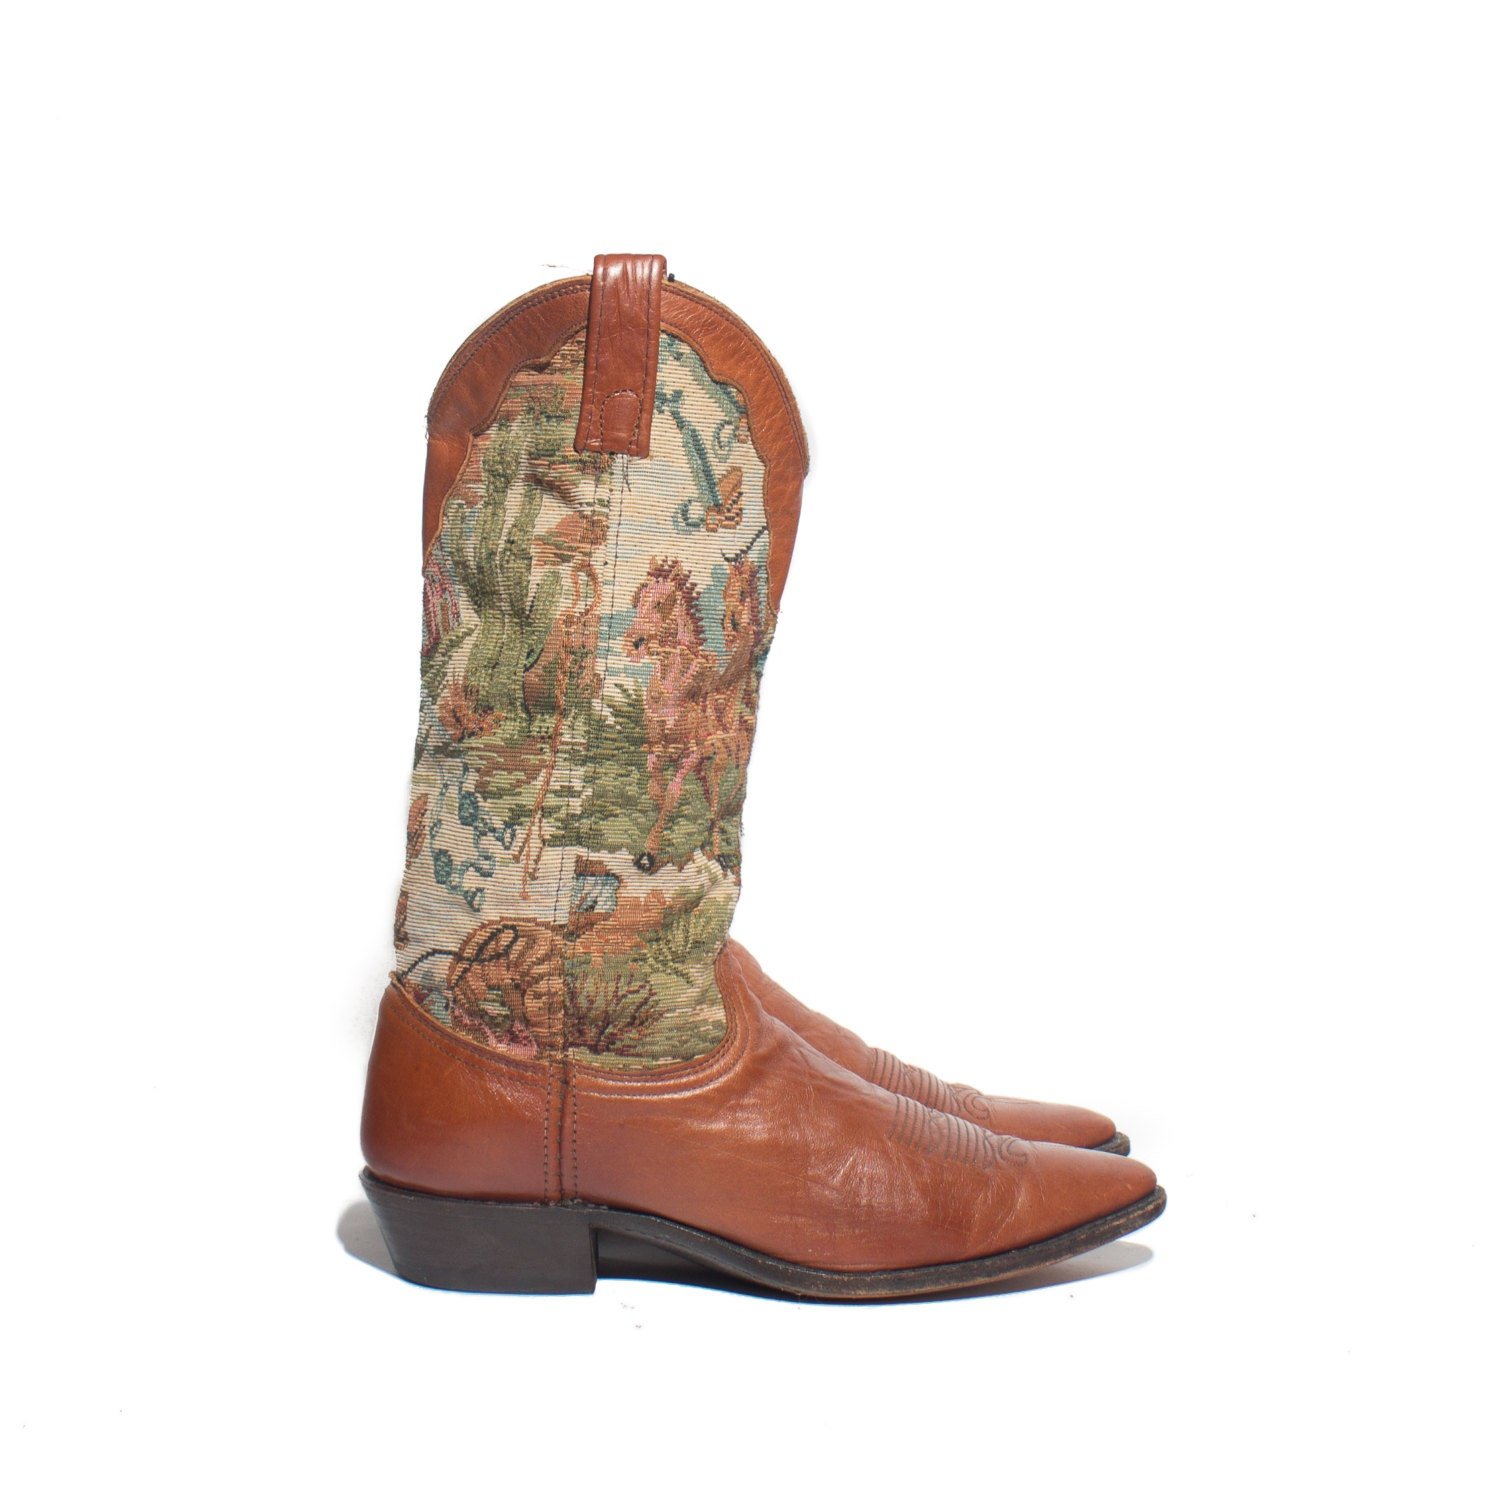 9 m dan post tapestry boots brown western cowboy boots